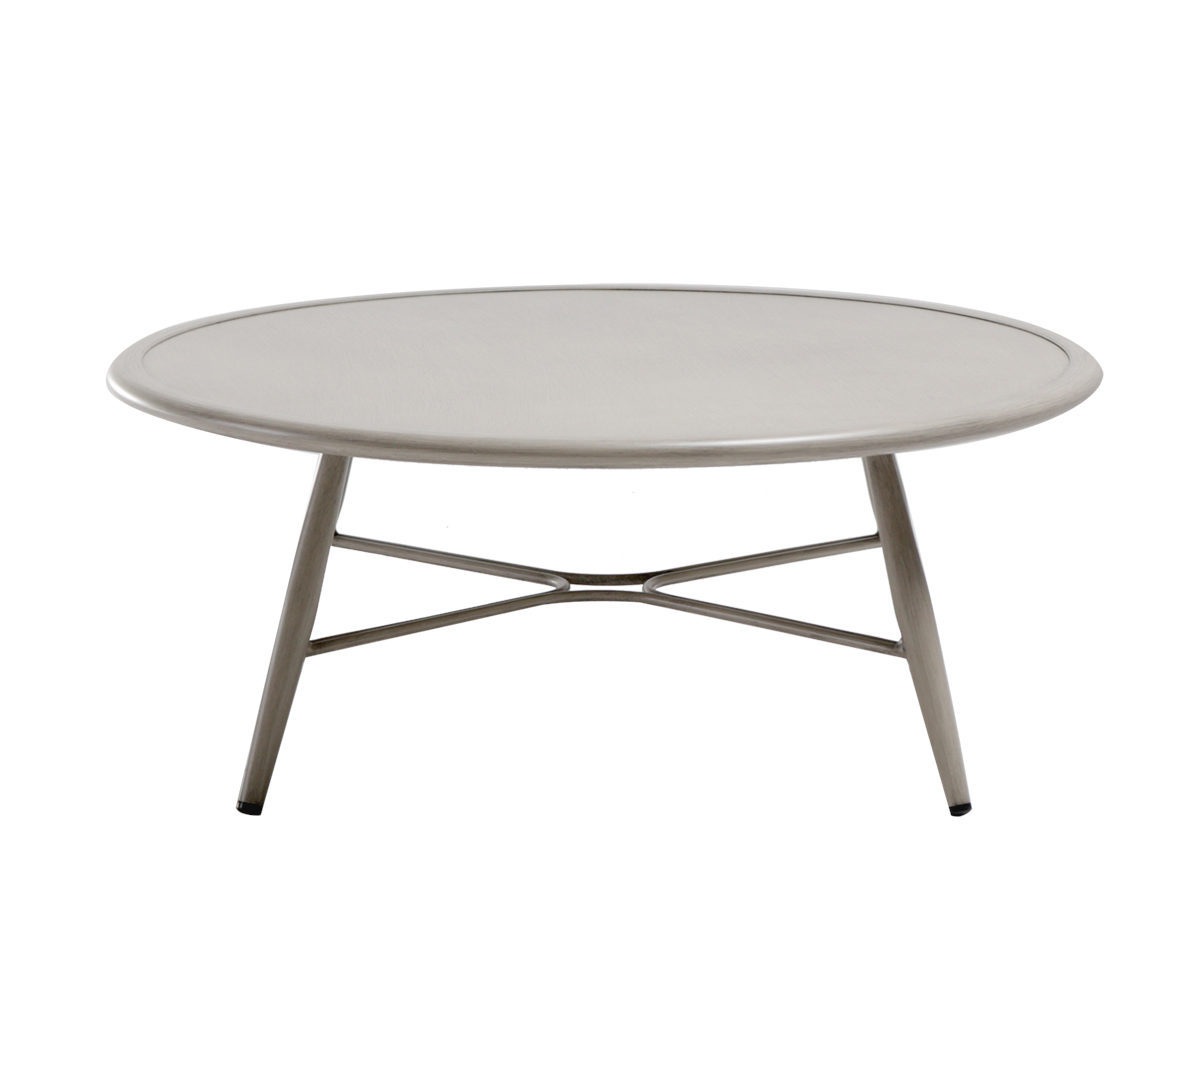 The Polanco coffee table in pearl color finish.